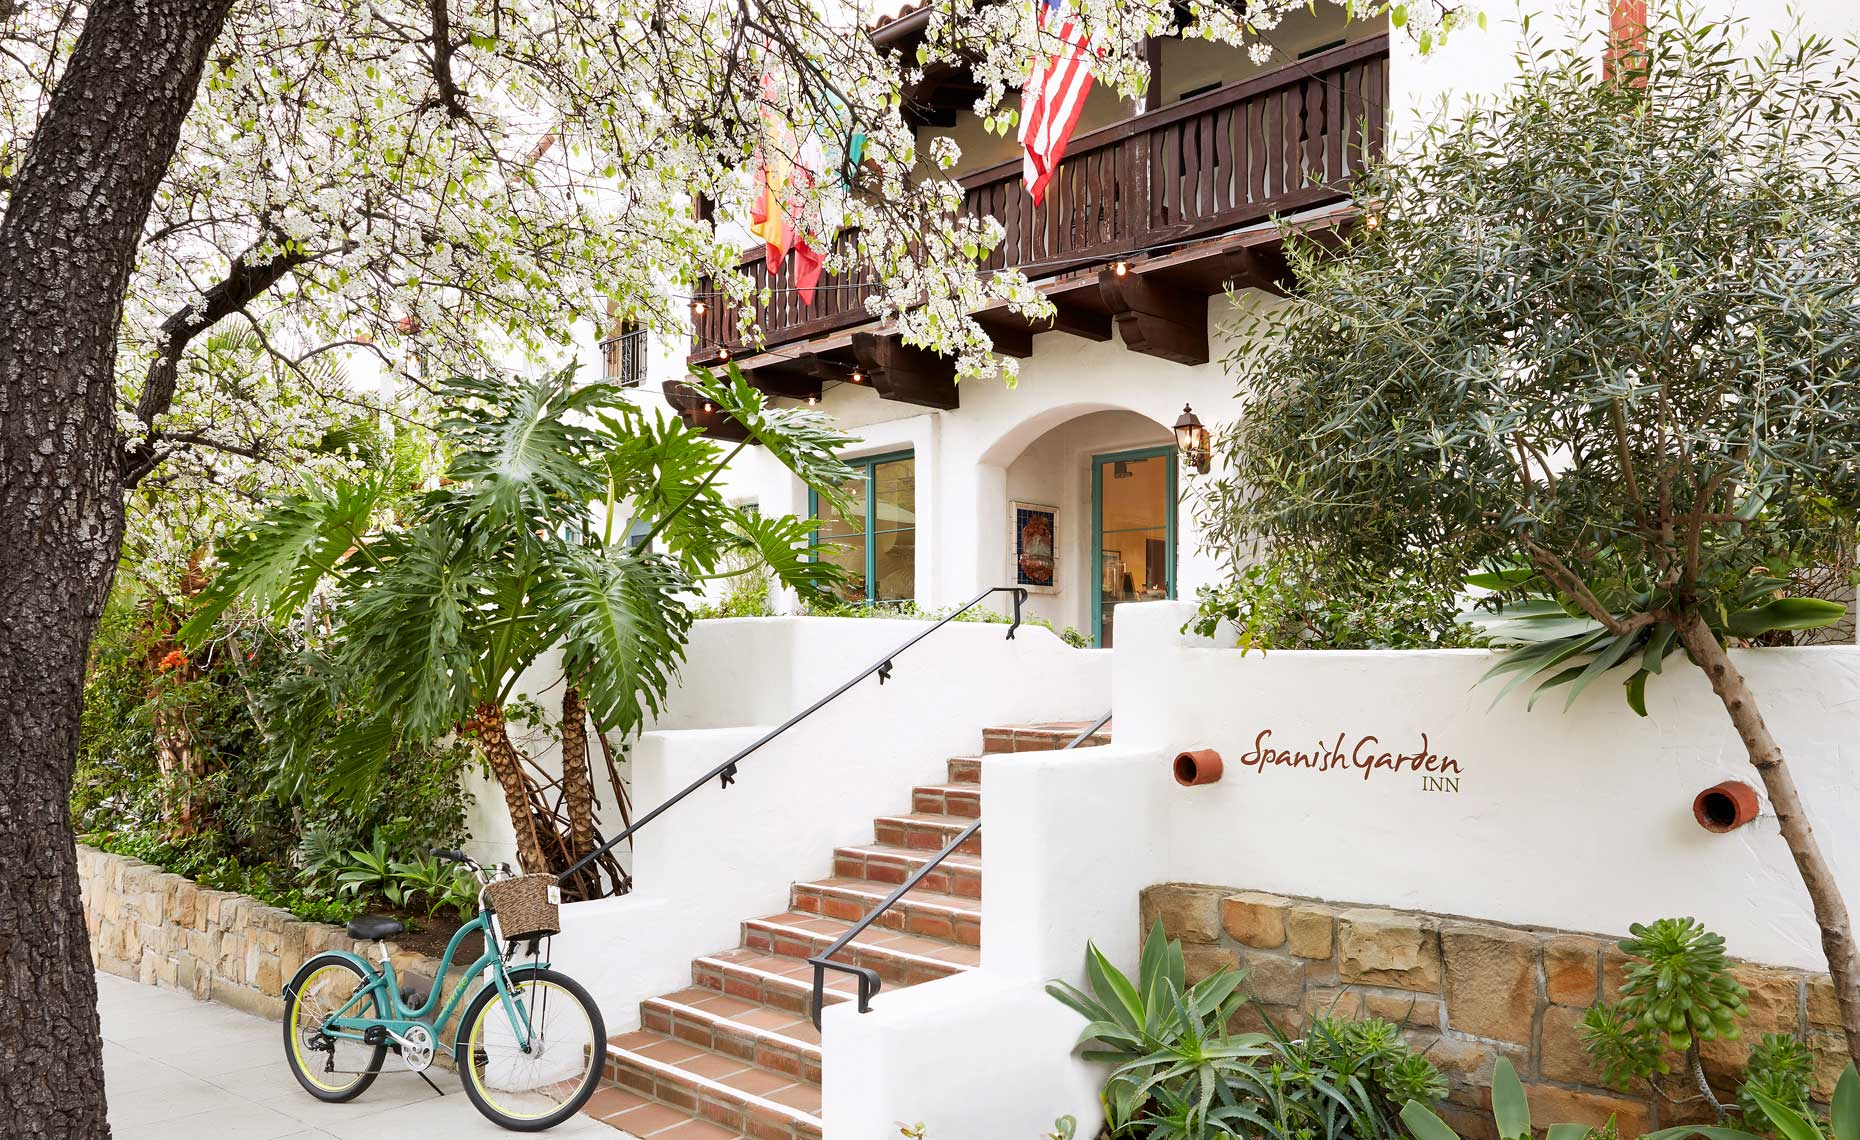 Spanish_Garden_Inn_Santa_Barbara_Ext